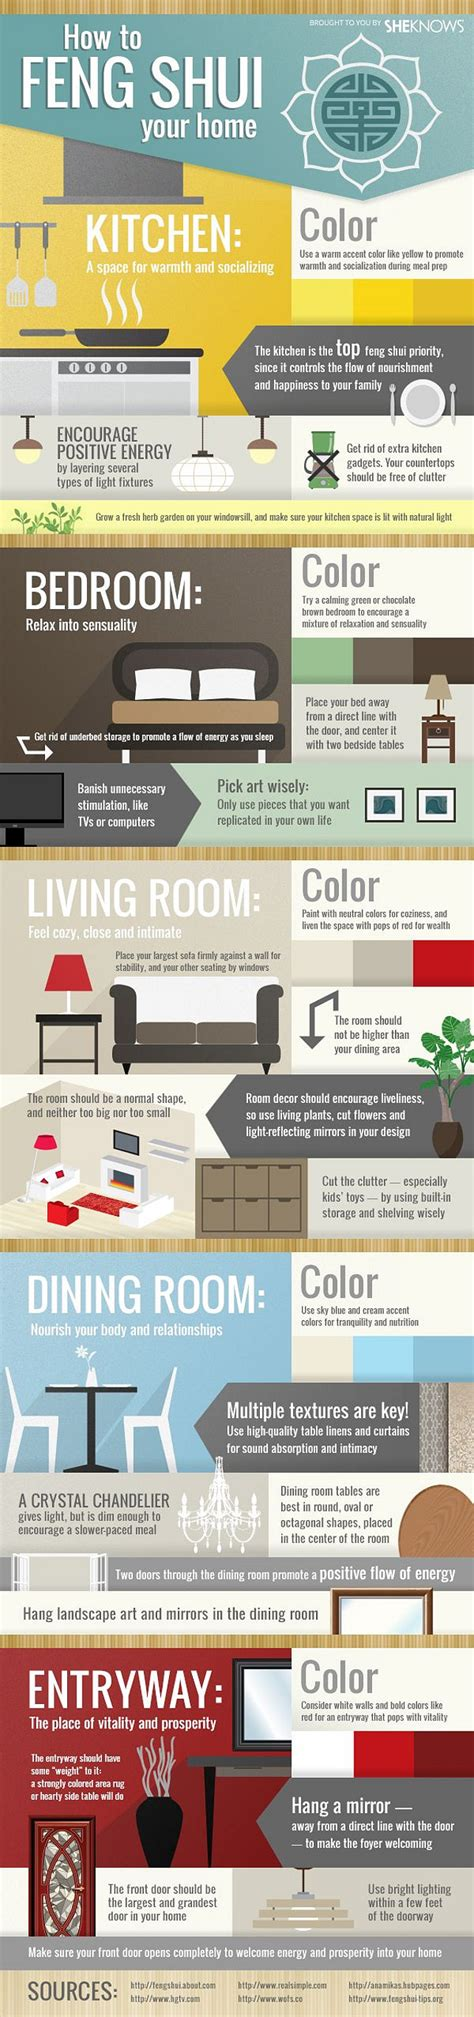 feng shui guide interior design ideas home bunch